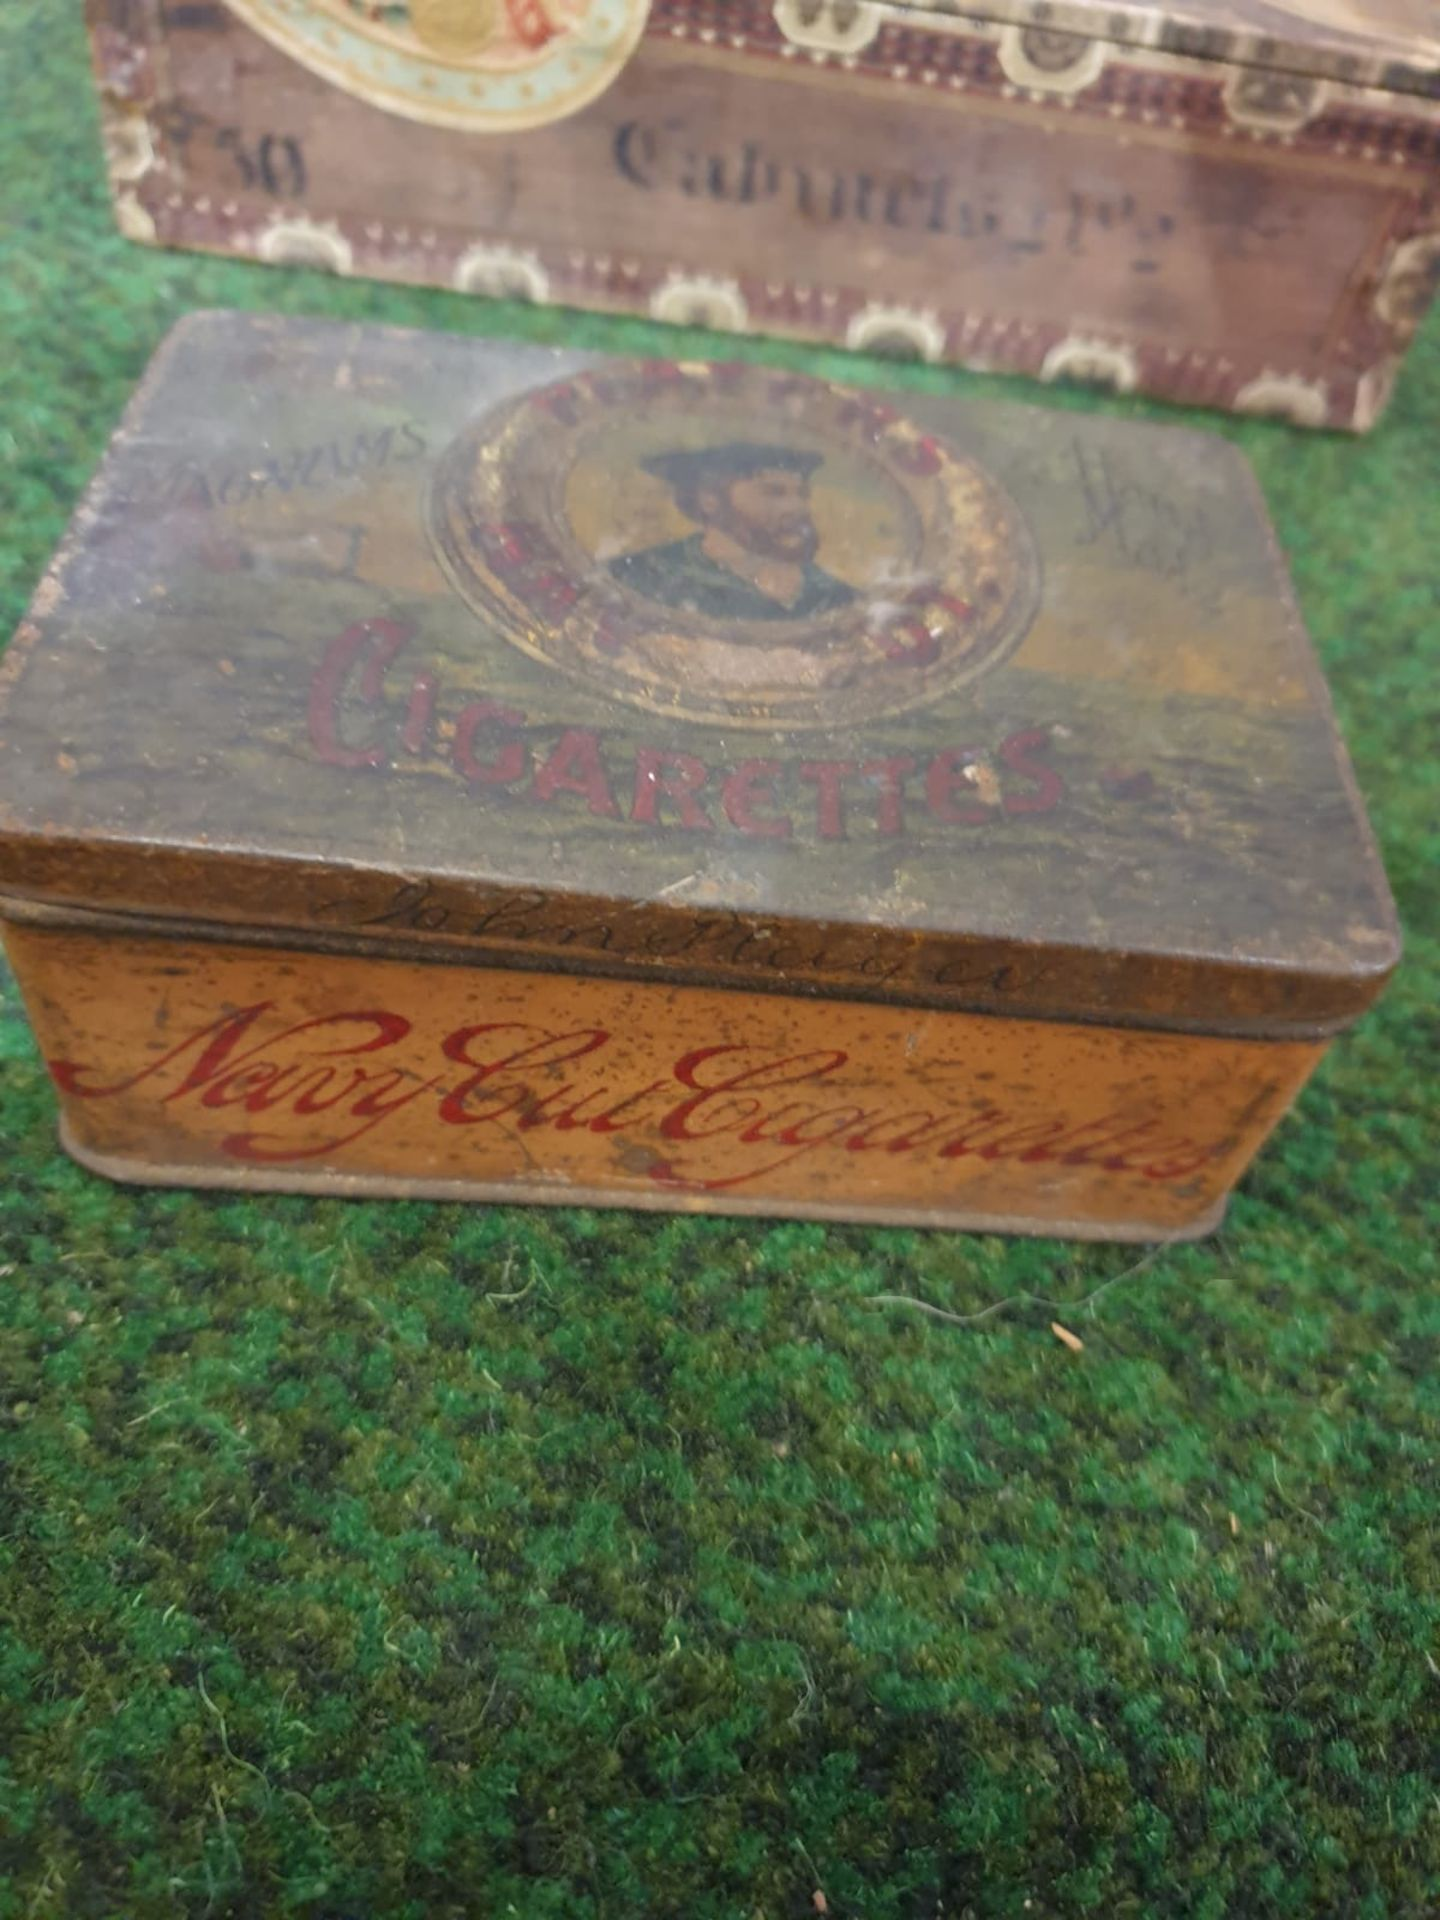 2 x vintage tobacco boxes Antique Players Navy Cut 50 Cigarettes Tin from Player & Sons in - Image 2 of 2